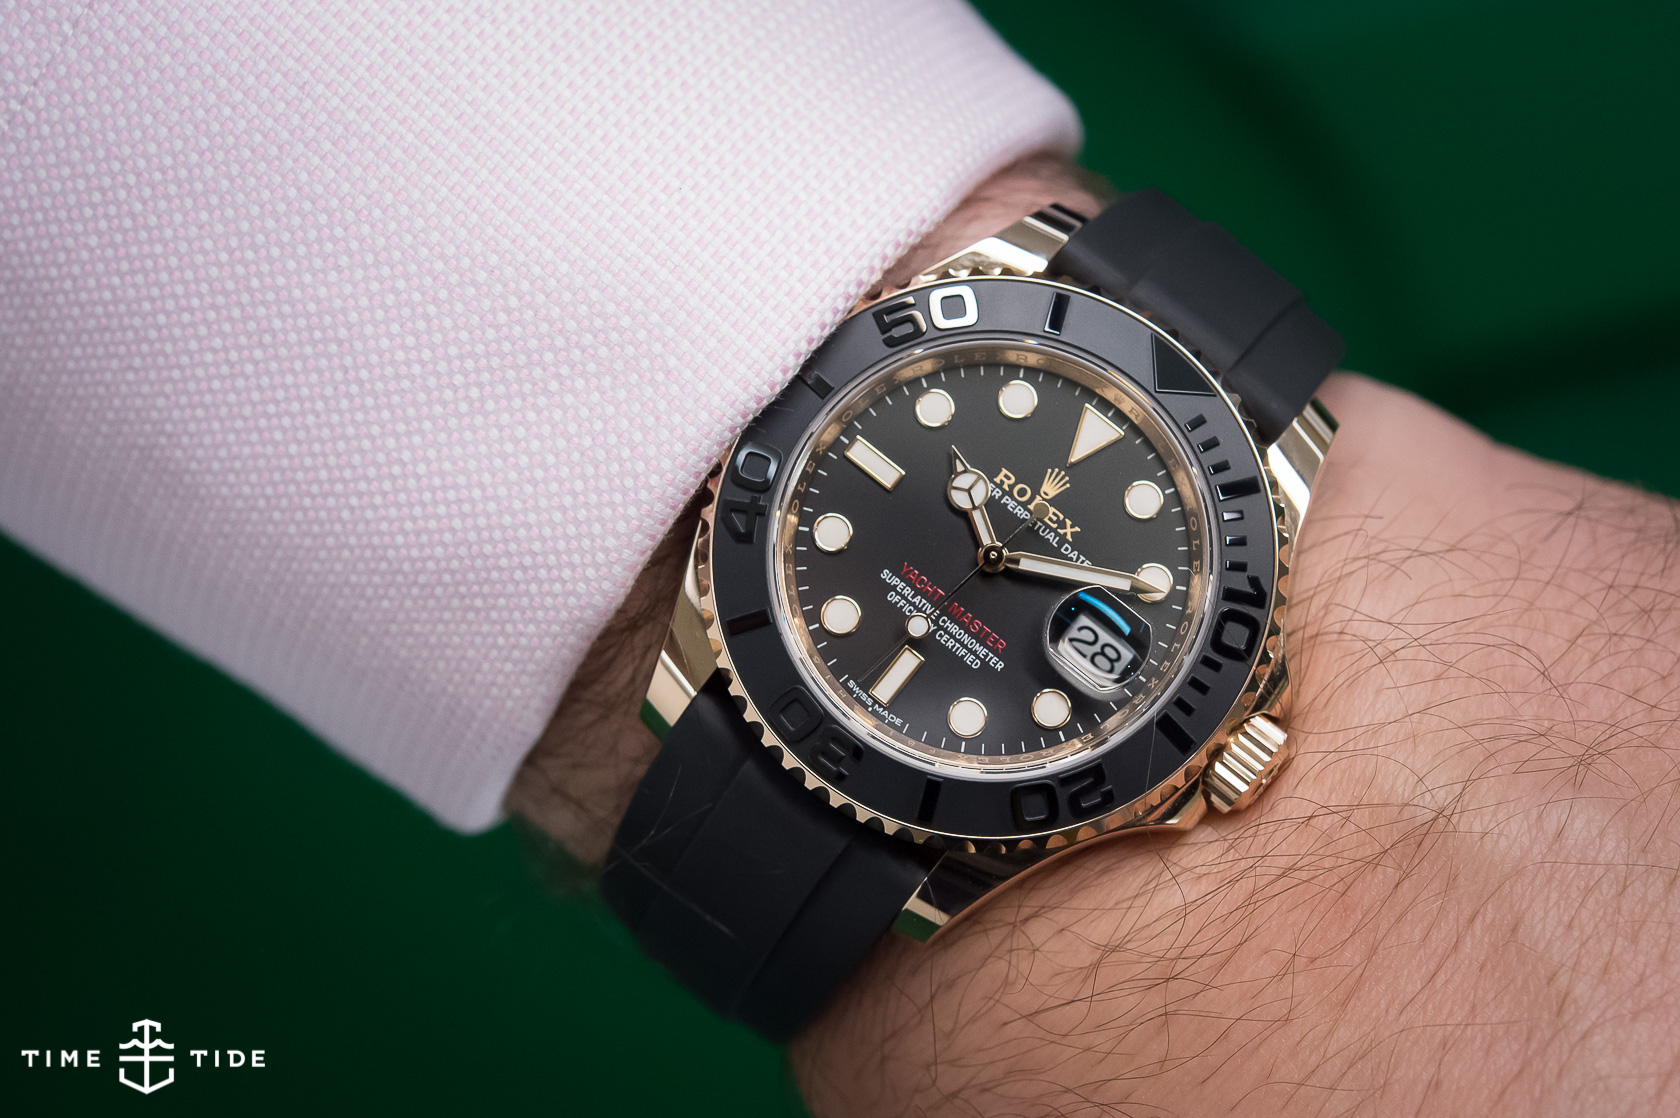 Hands On The Rolex Oyster Perpetual Yacht Master 116655